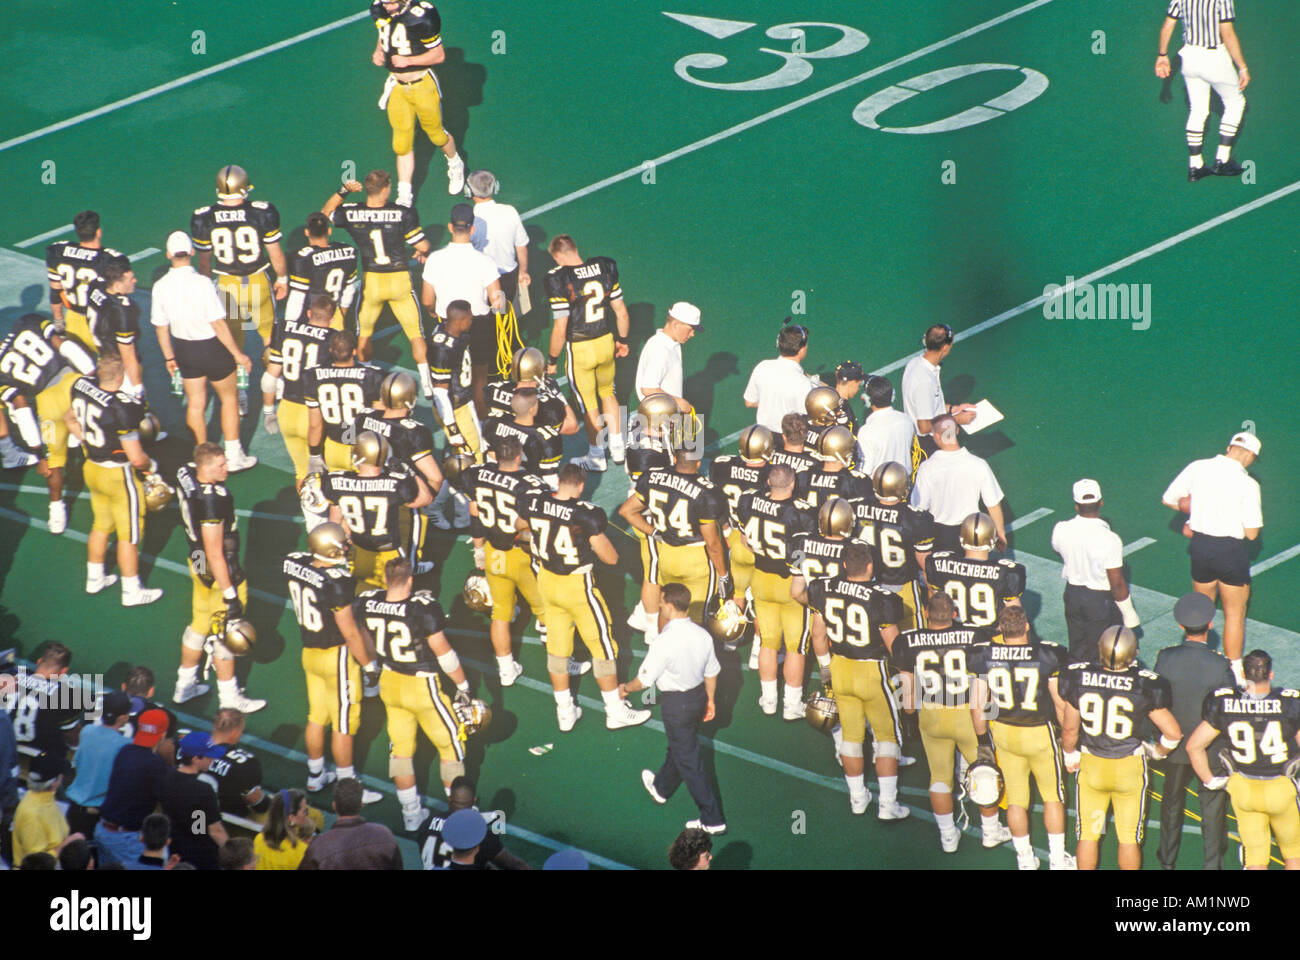 College football game Army vs Lafayette Michie Stadium New York - Stock Image